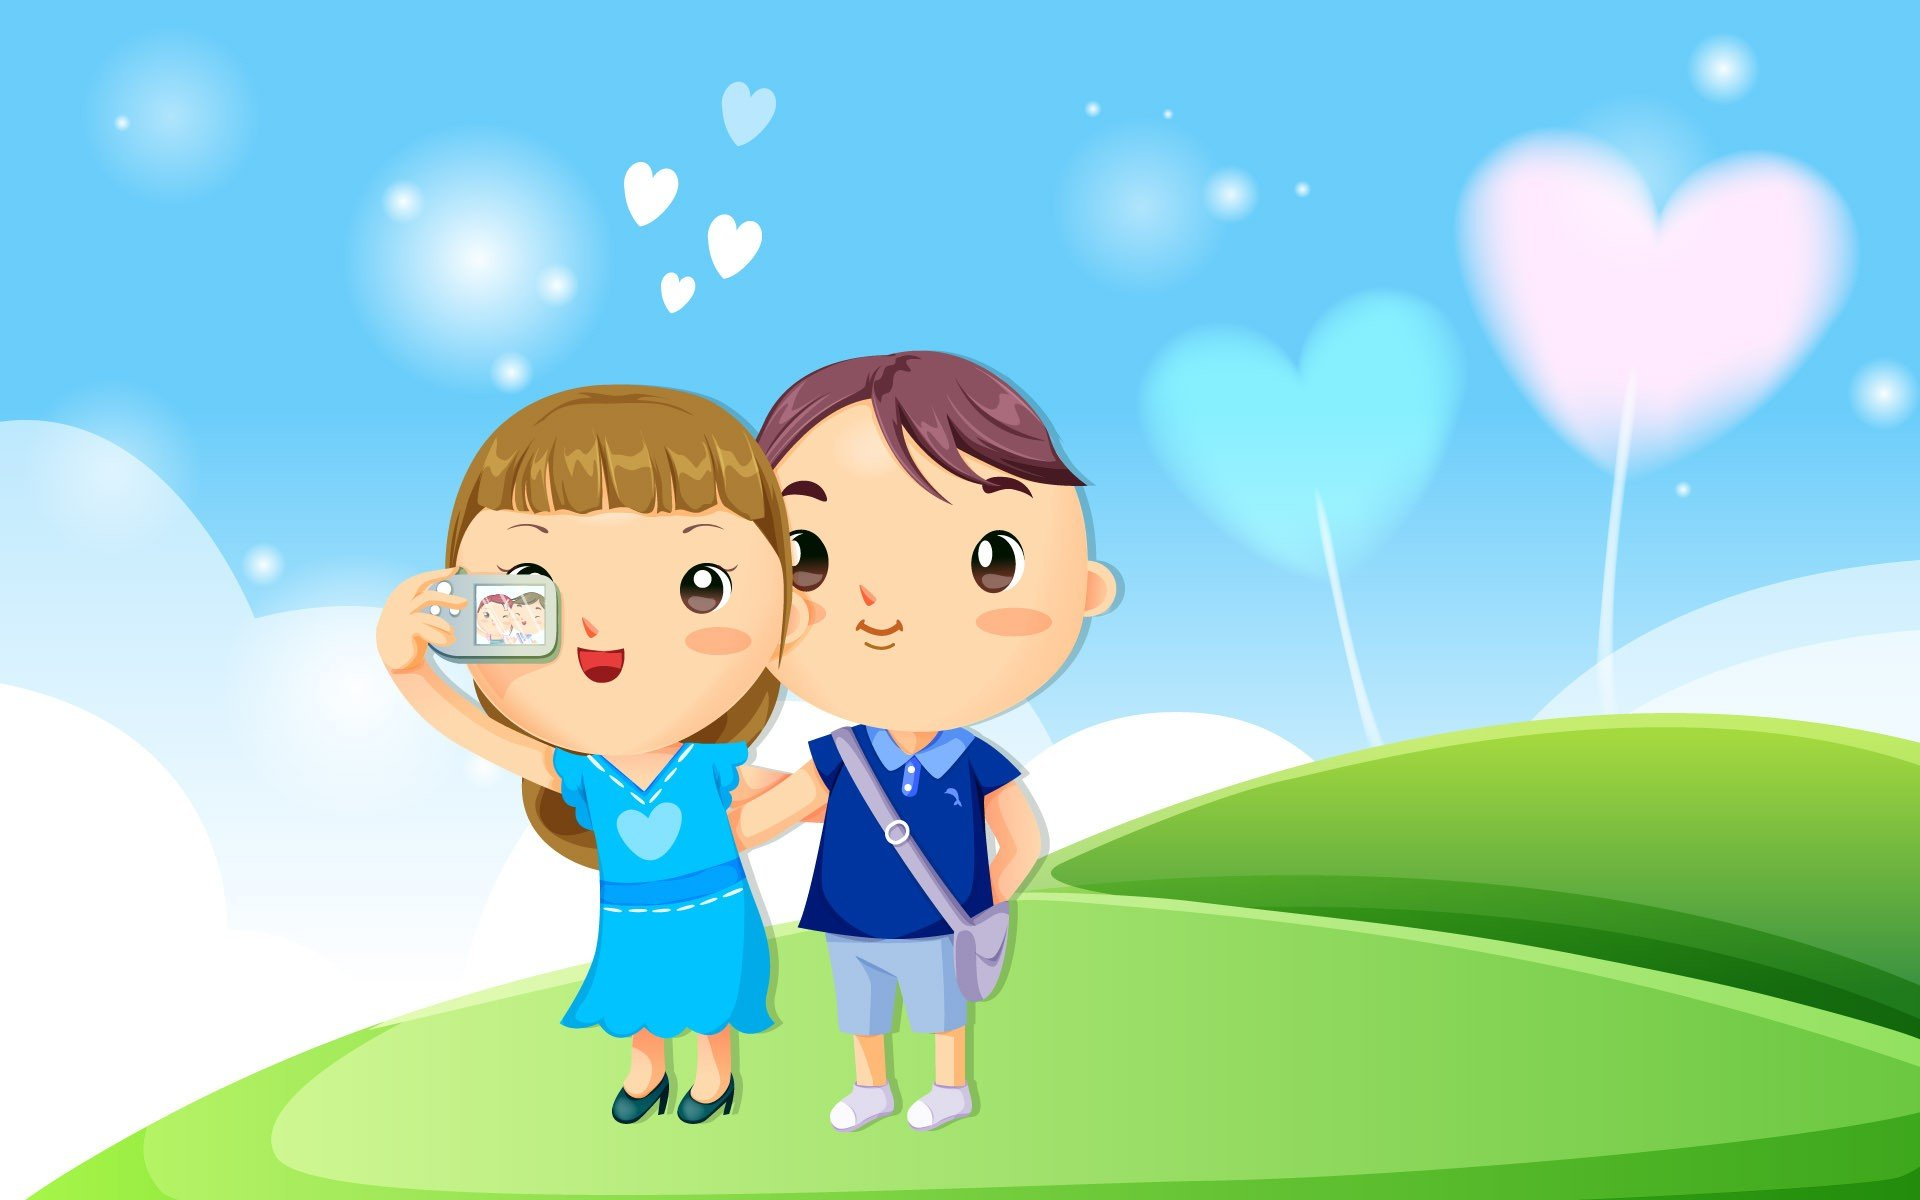 Download cartoon love hd wallpapers gallery - Love cartoon hd ...